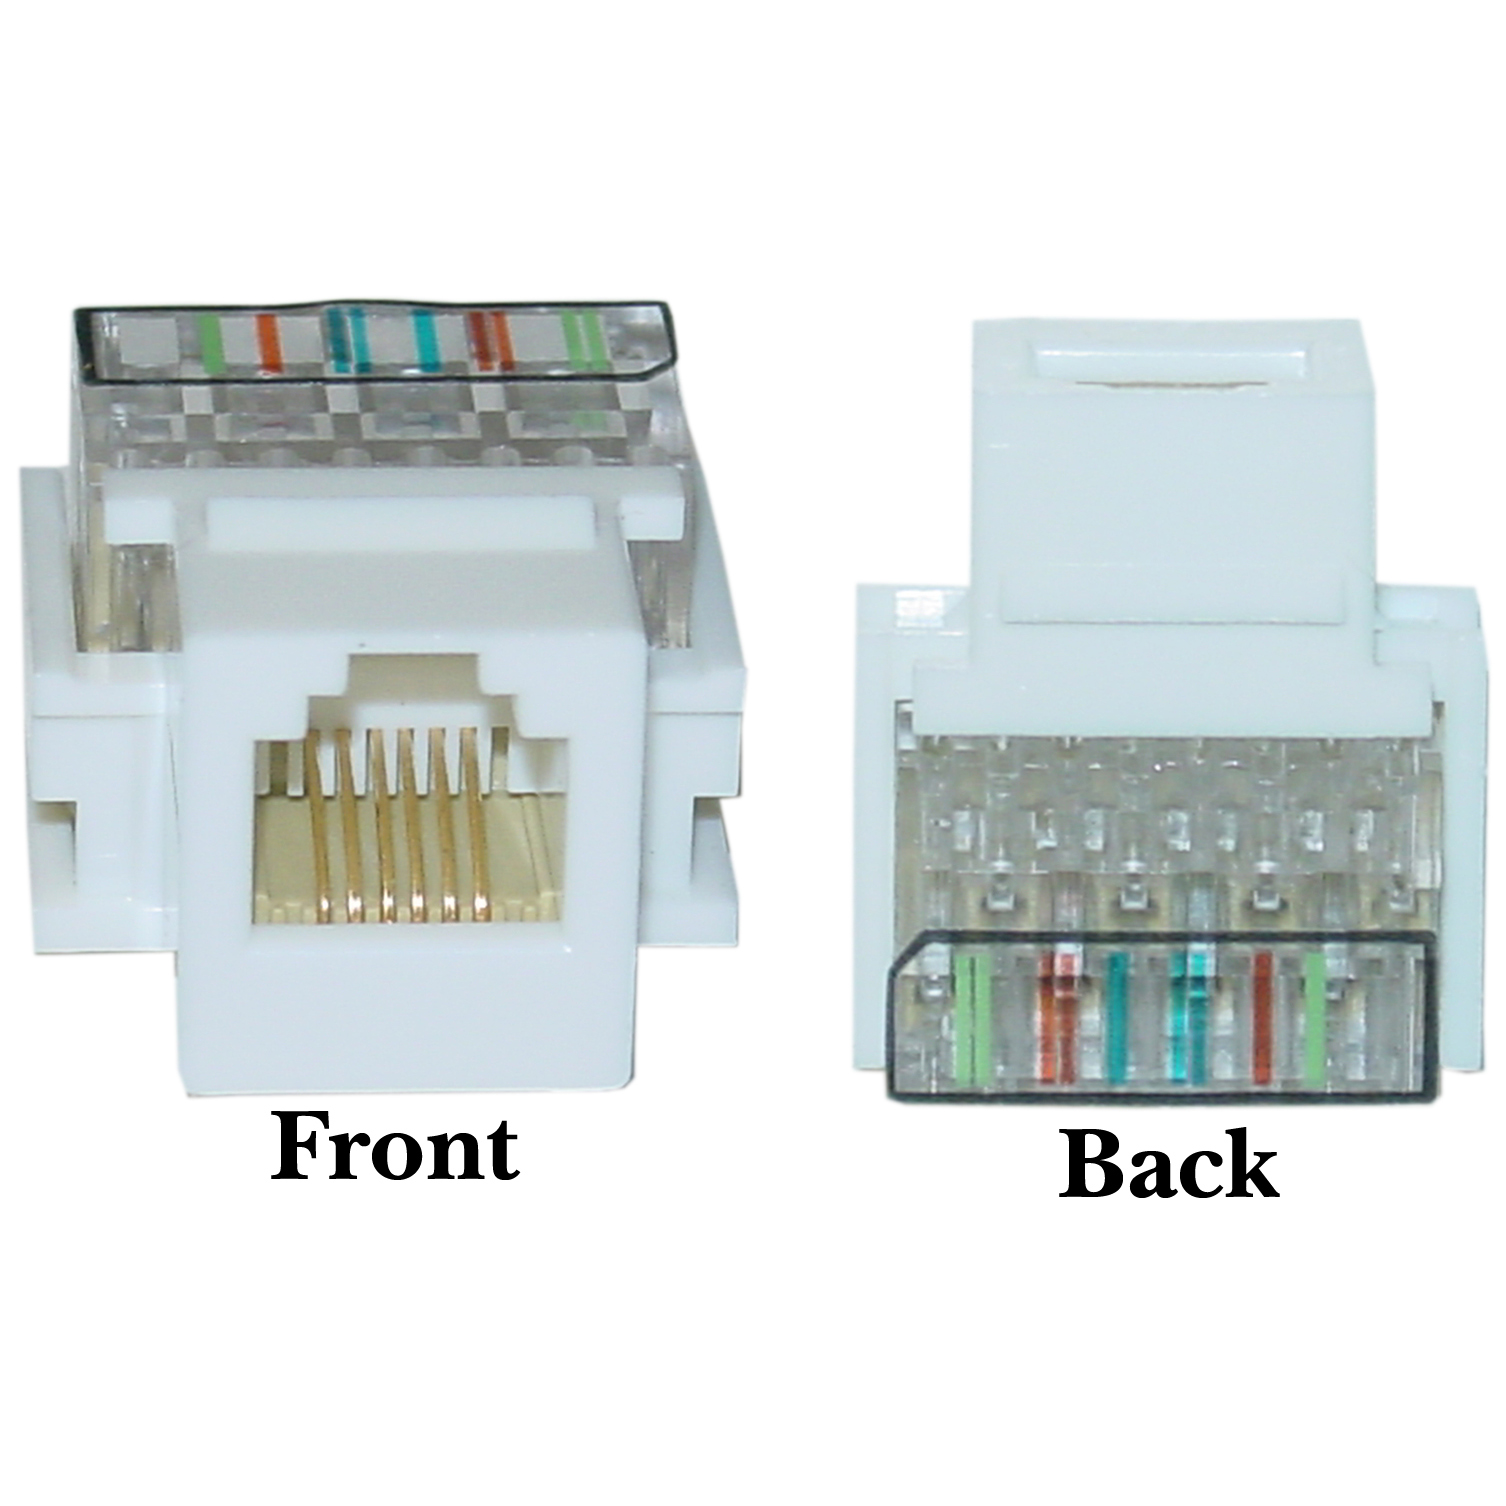 Keystone Rj11 Wiring Diagram Another Blog About Vs Rj12 Phone Jack U2022 Rh Ok2 Infoservice Ru